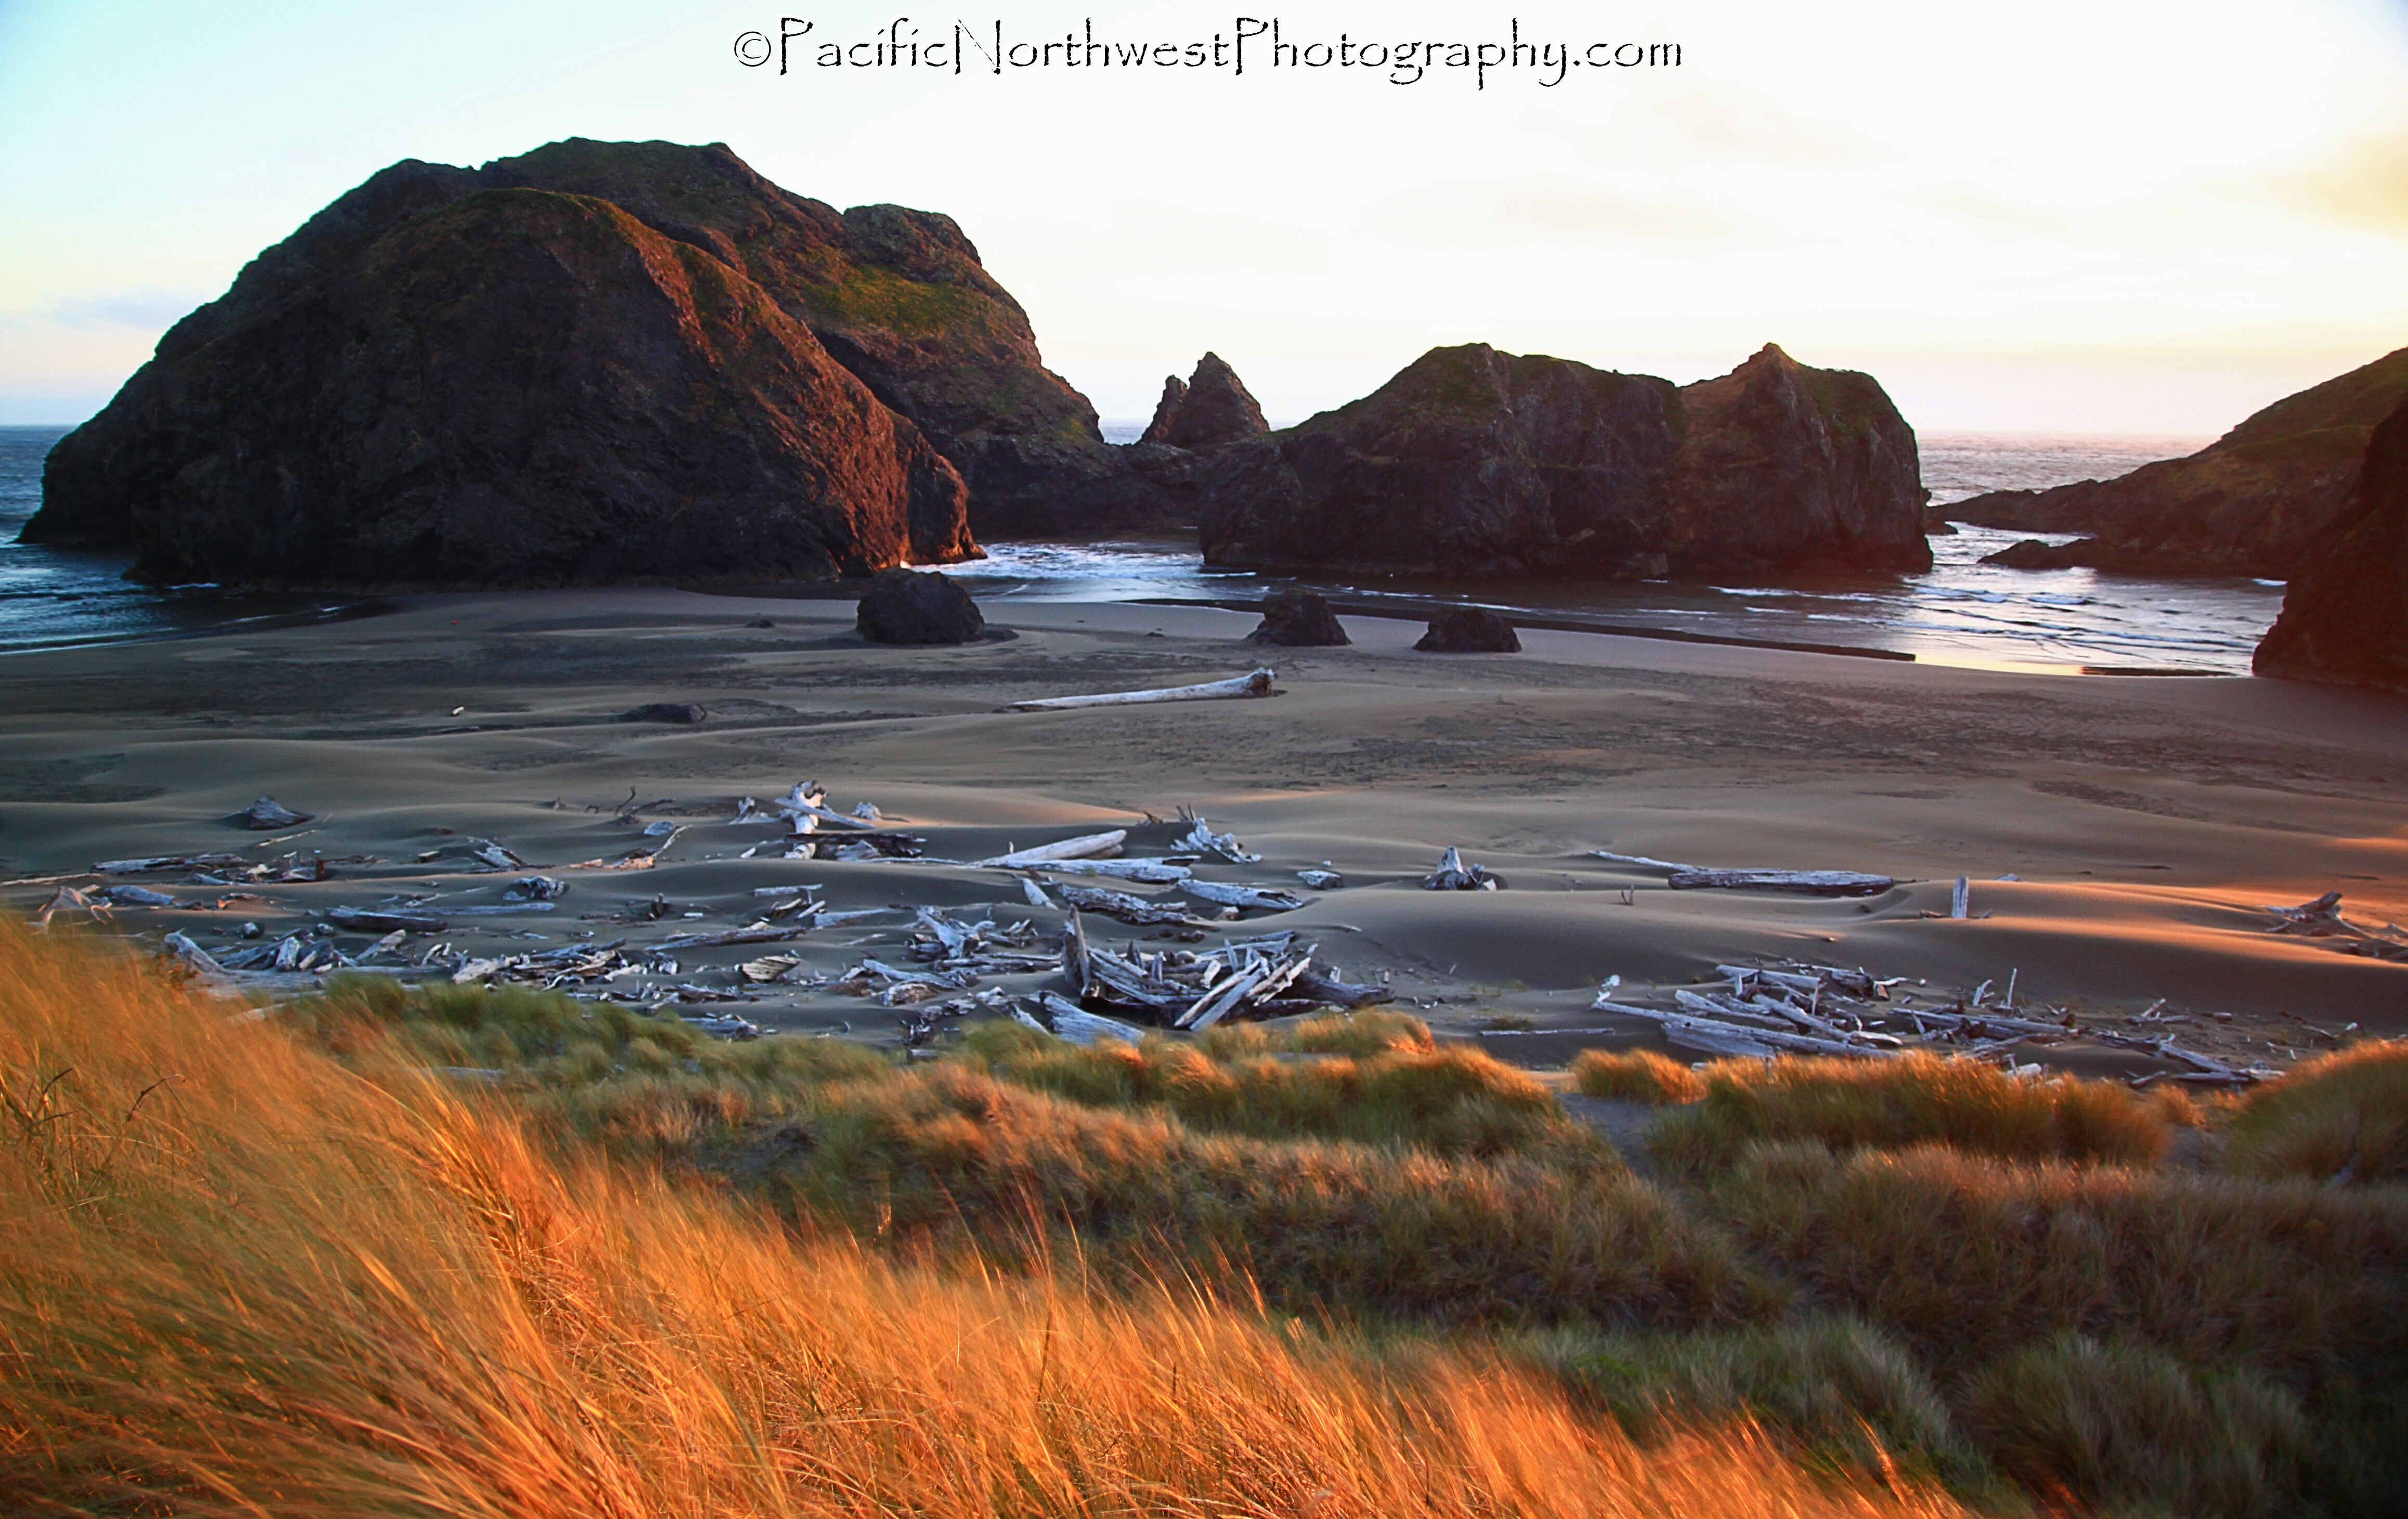 Cape Sebastian along the Southern Oregon Coast